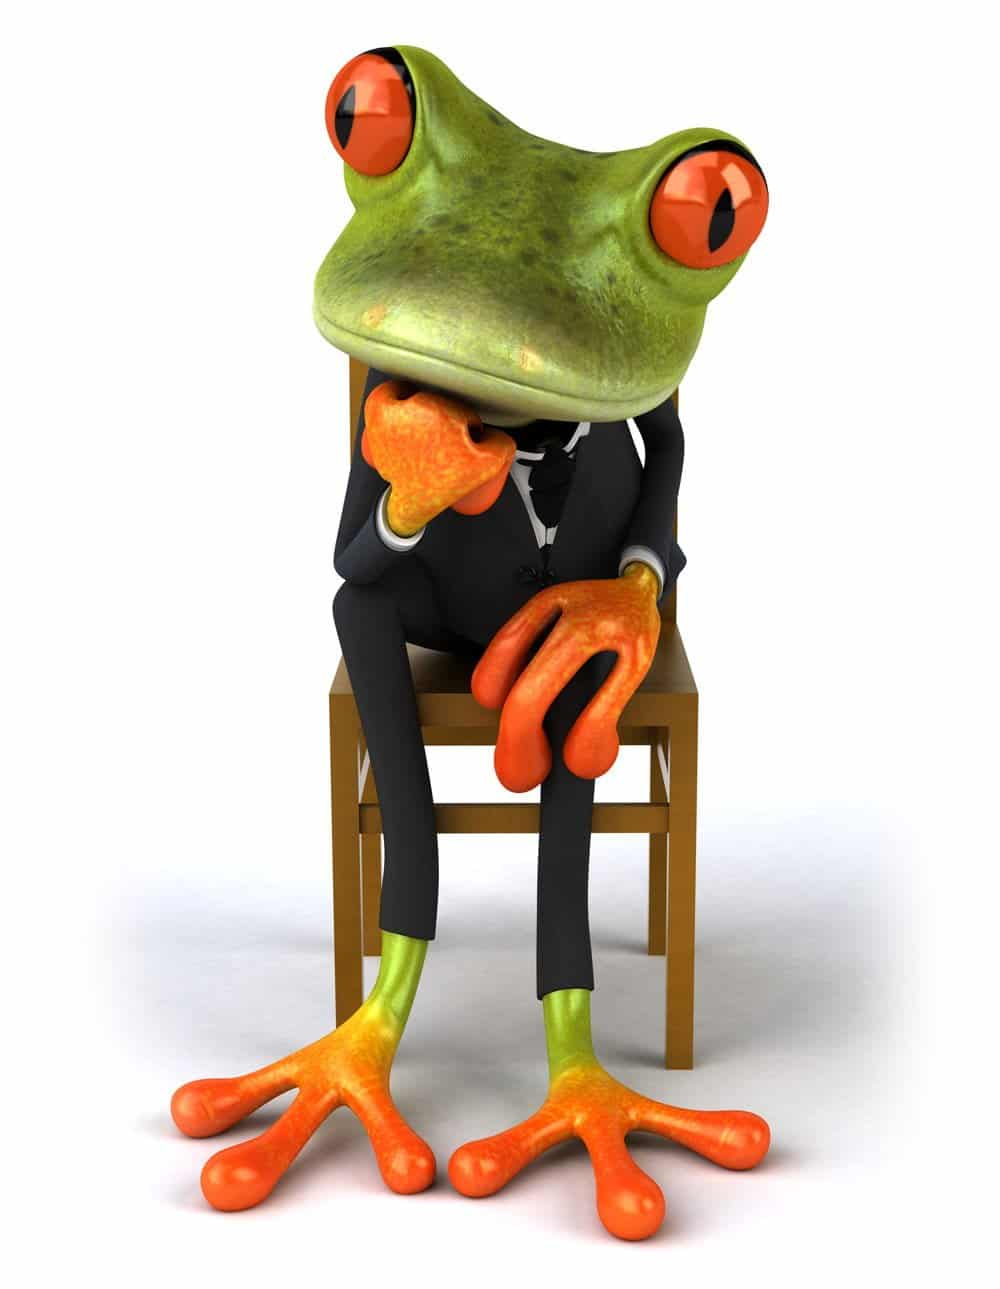 Conference call frog